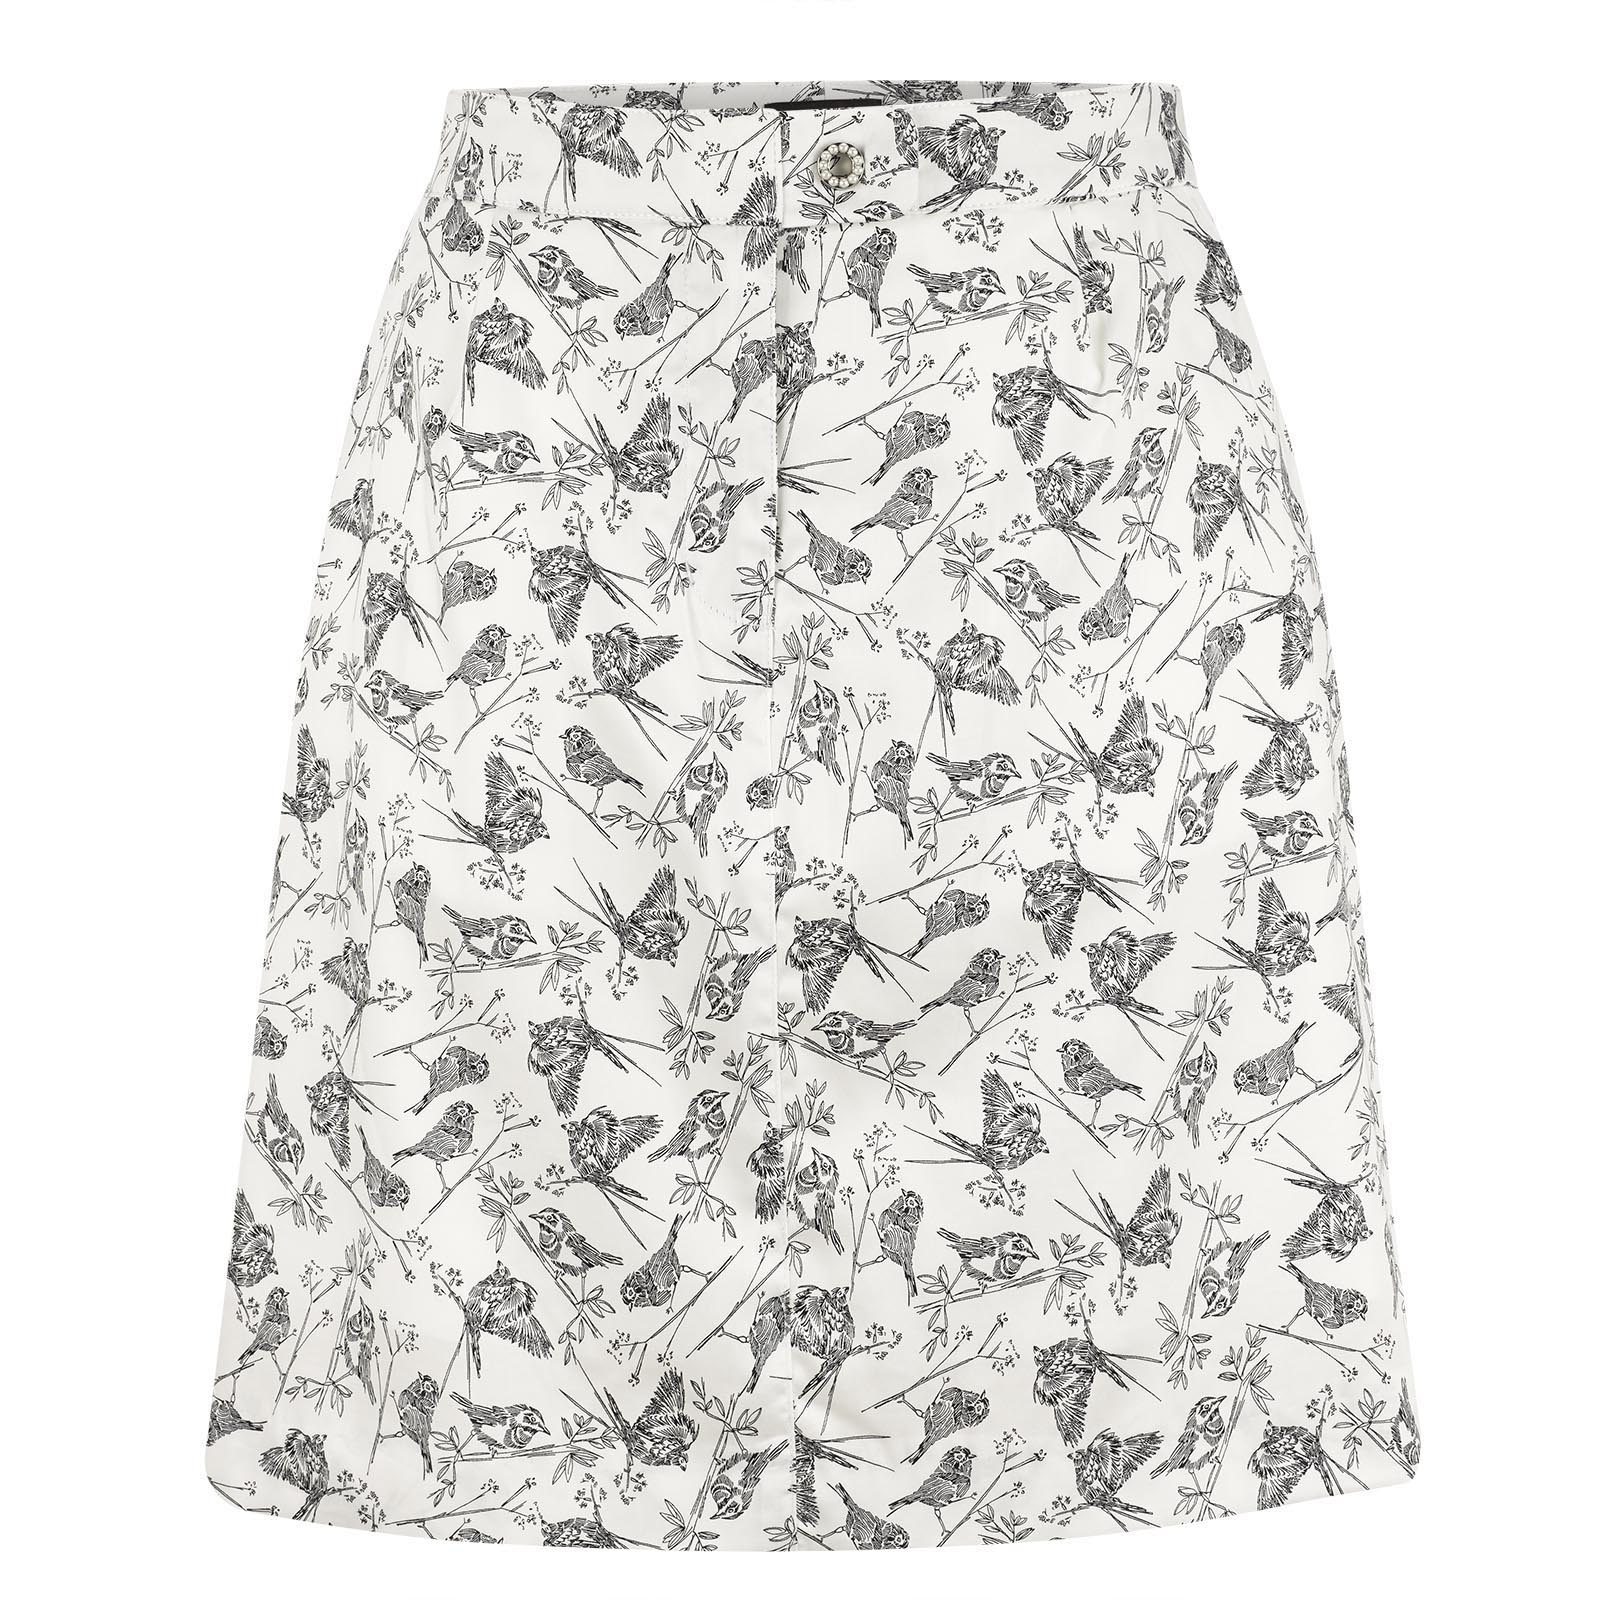 Stretch cotton Ladies' golf skort with graphic print